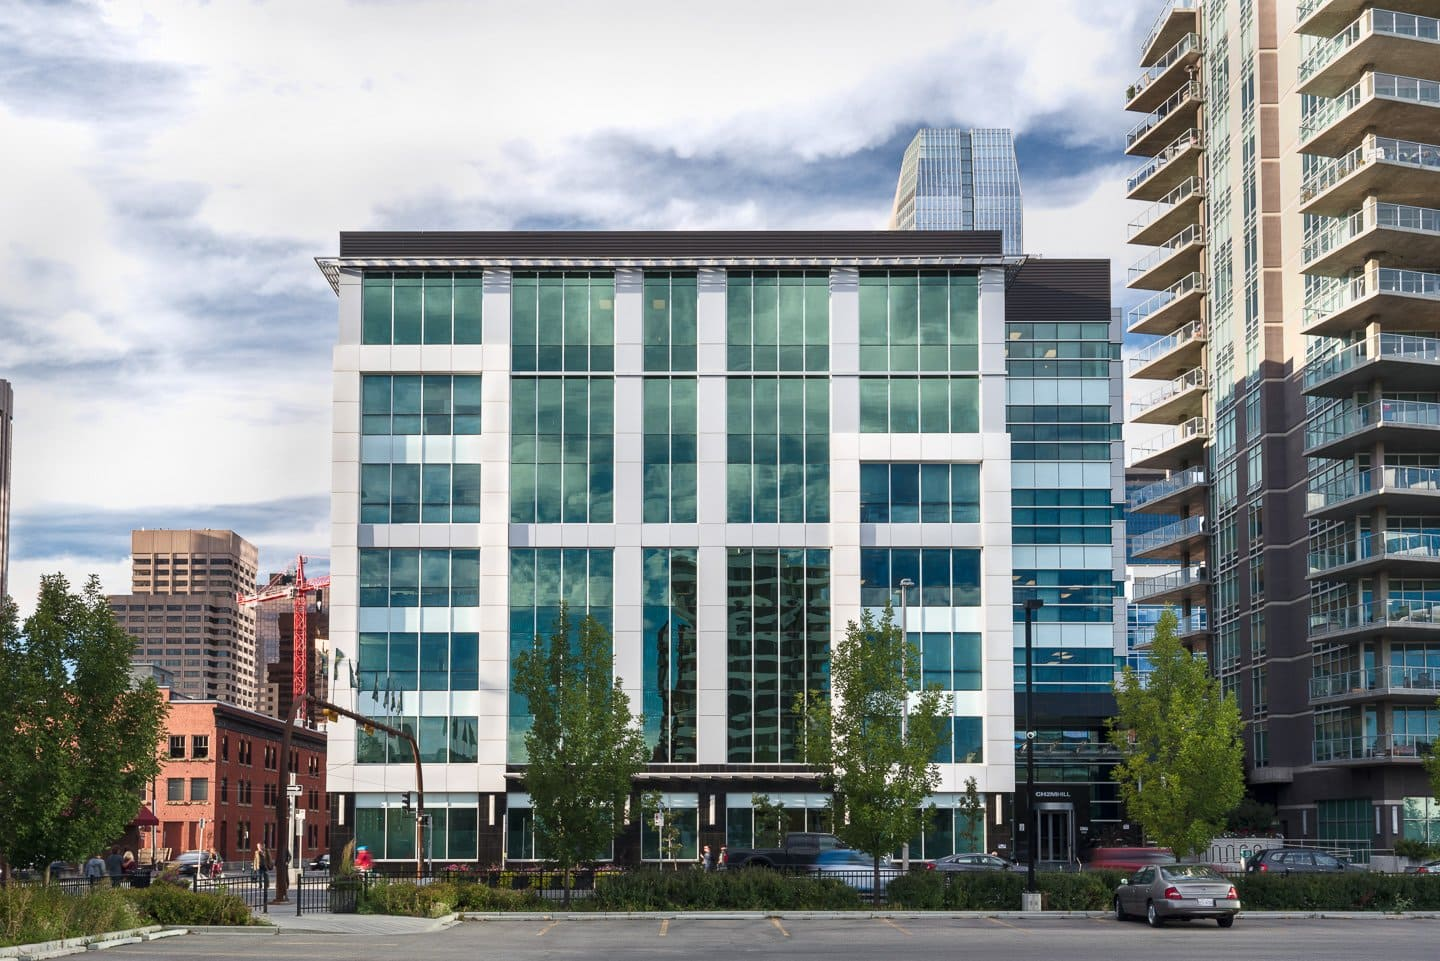 Real Estate Photography of a commercial building in Calgary